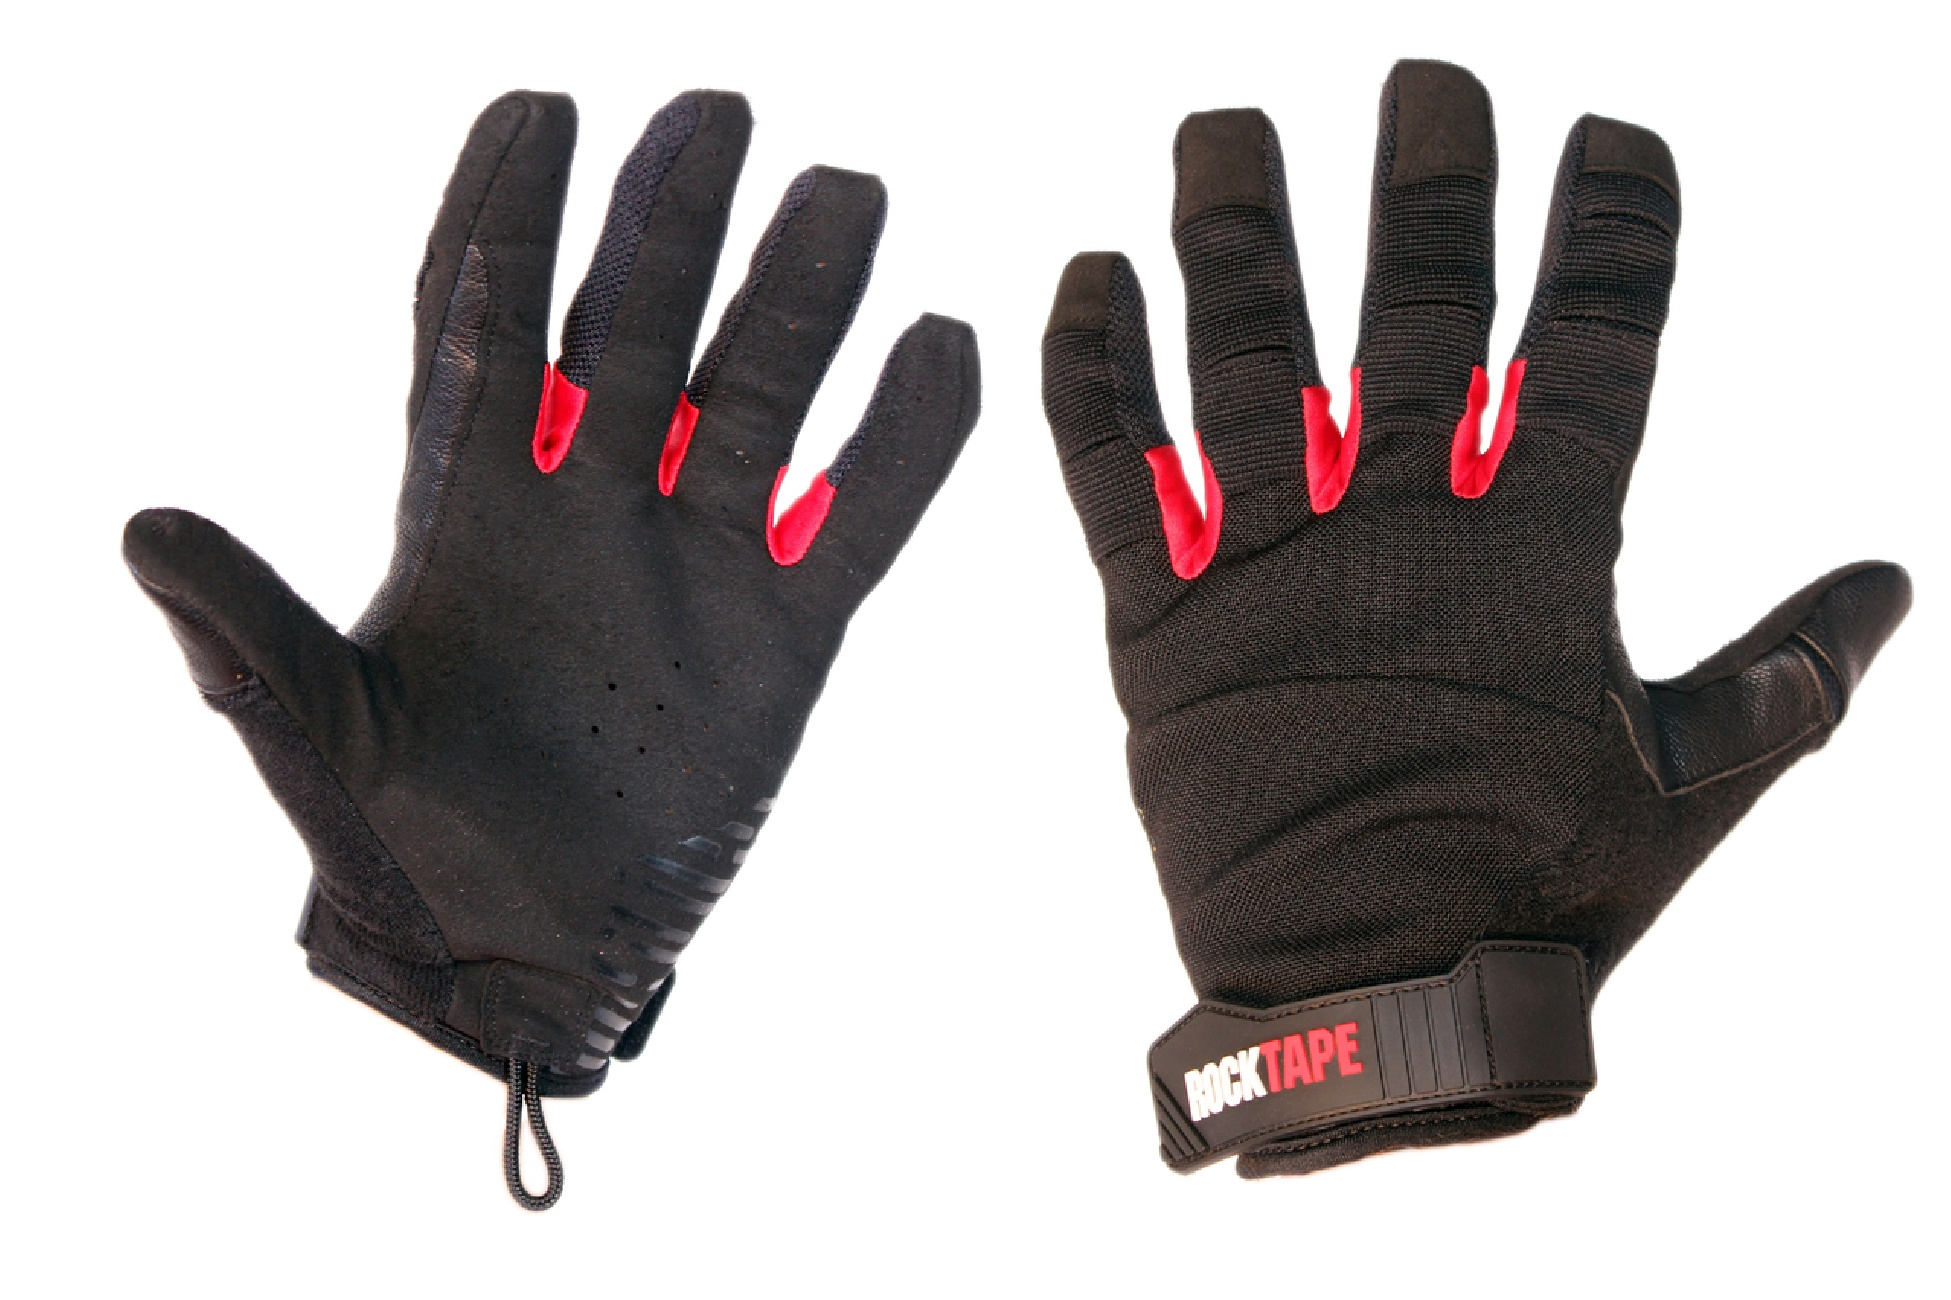 Rocktape Talons - Workout Gloves